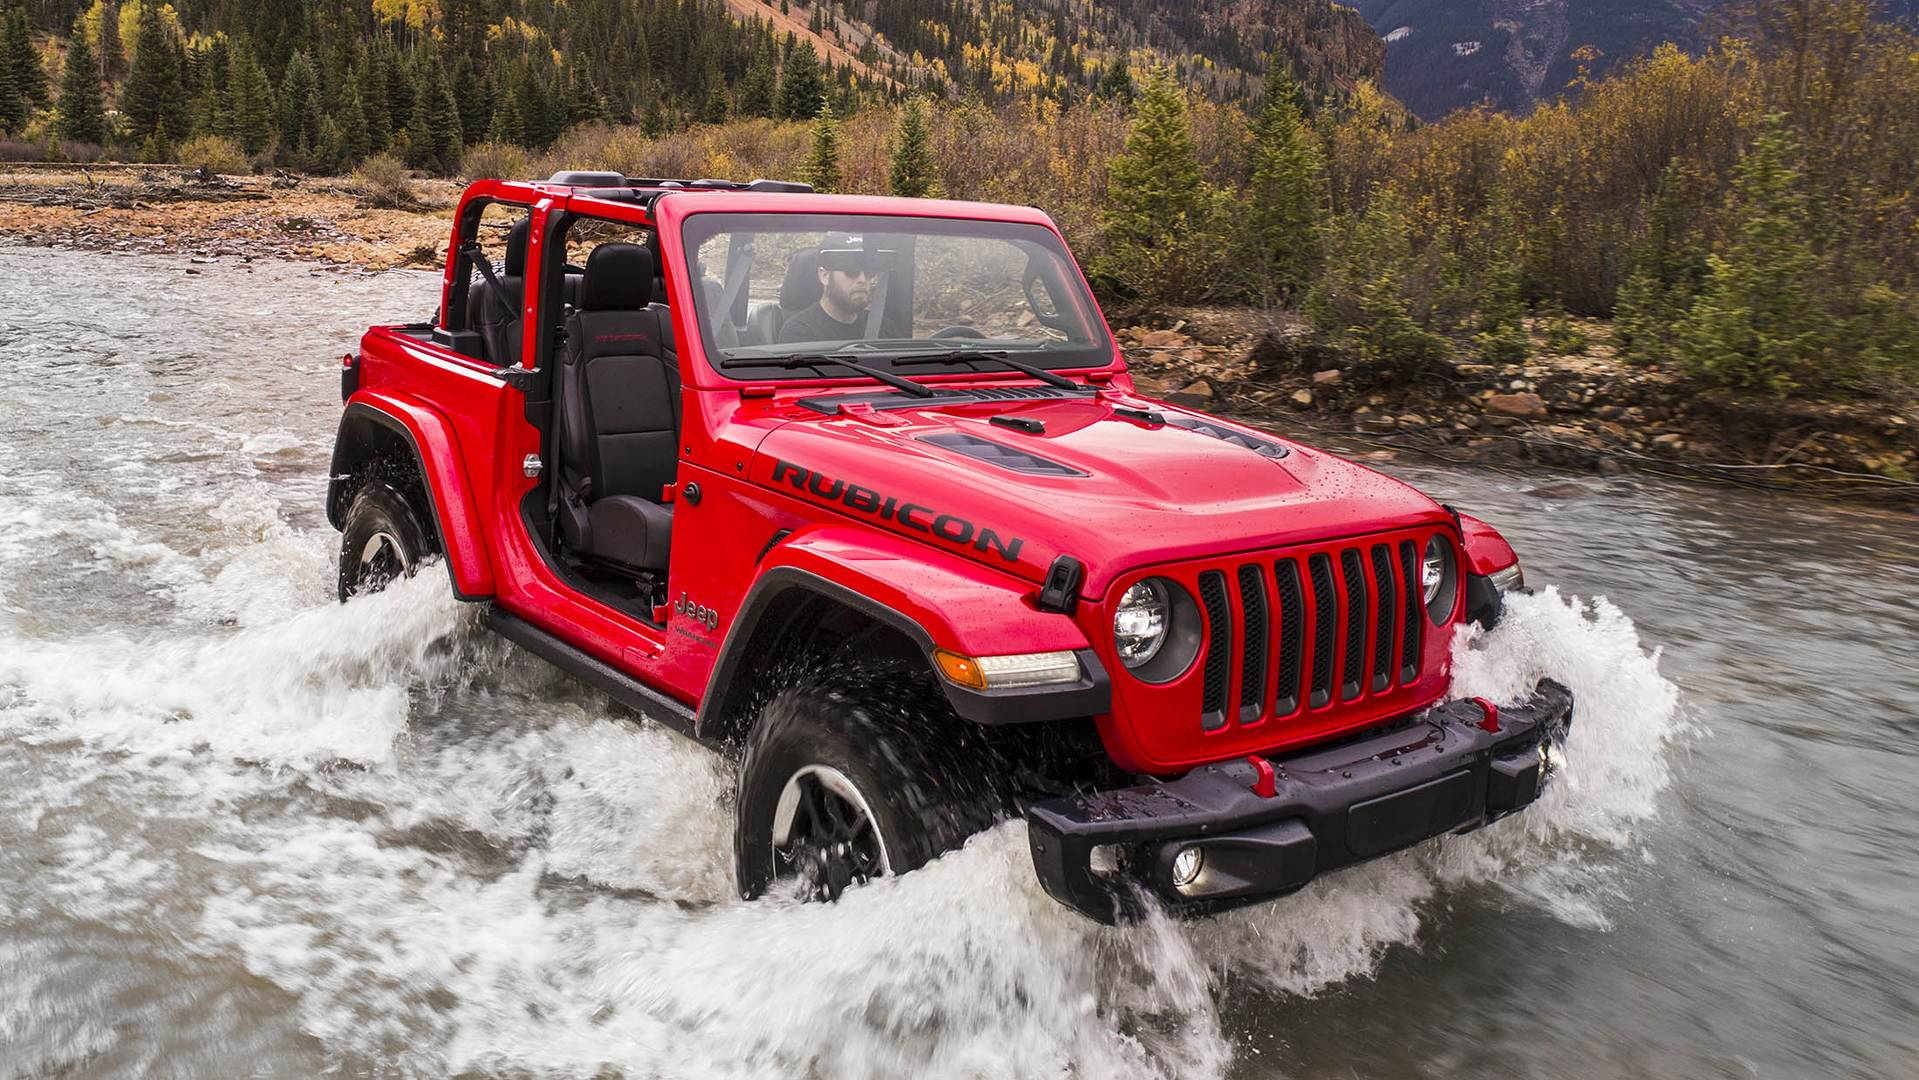 2018 jeep wrangler price list jl starts at 26 995 jlu at 30 495 autoevolution. Black Bedroom Furniture Sets. Home Design Ideas